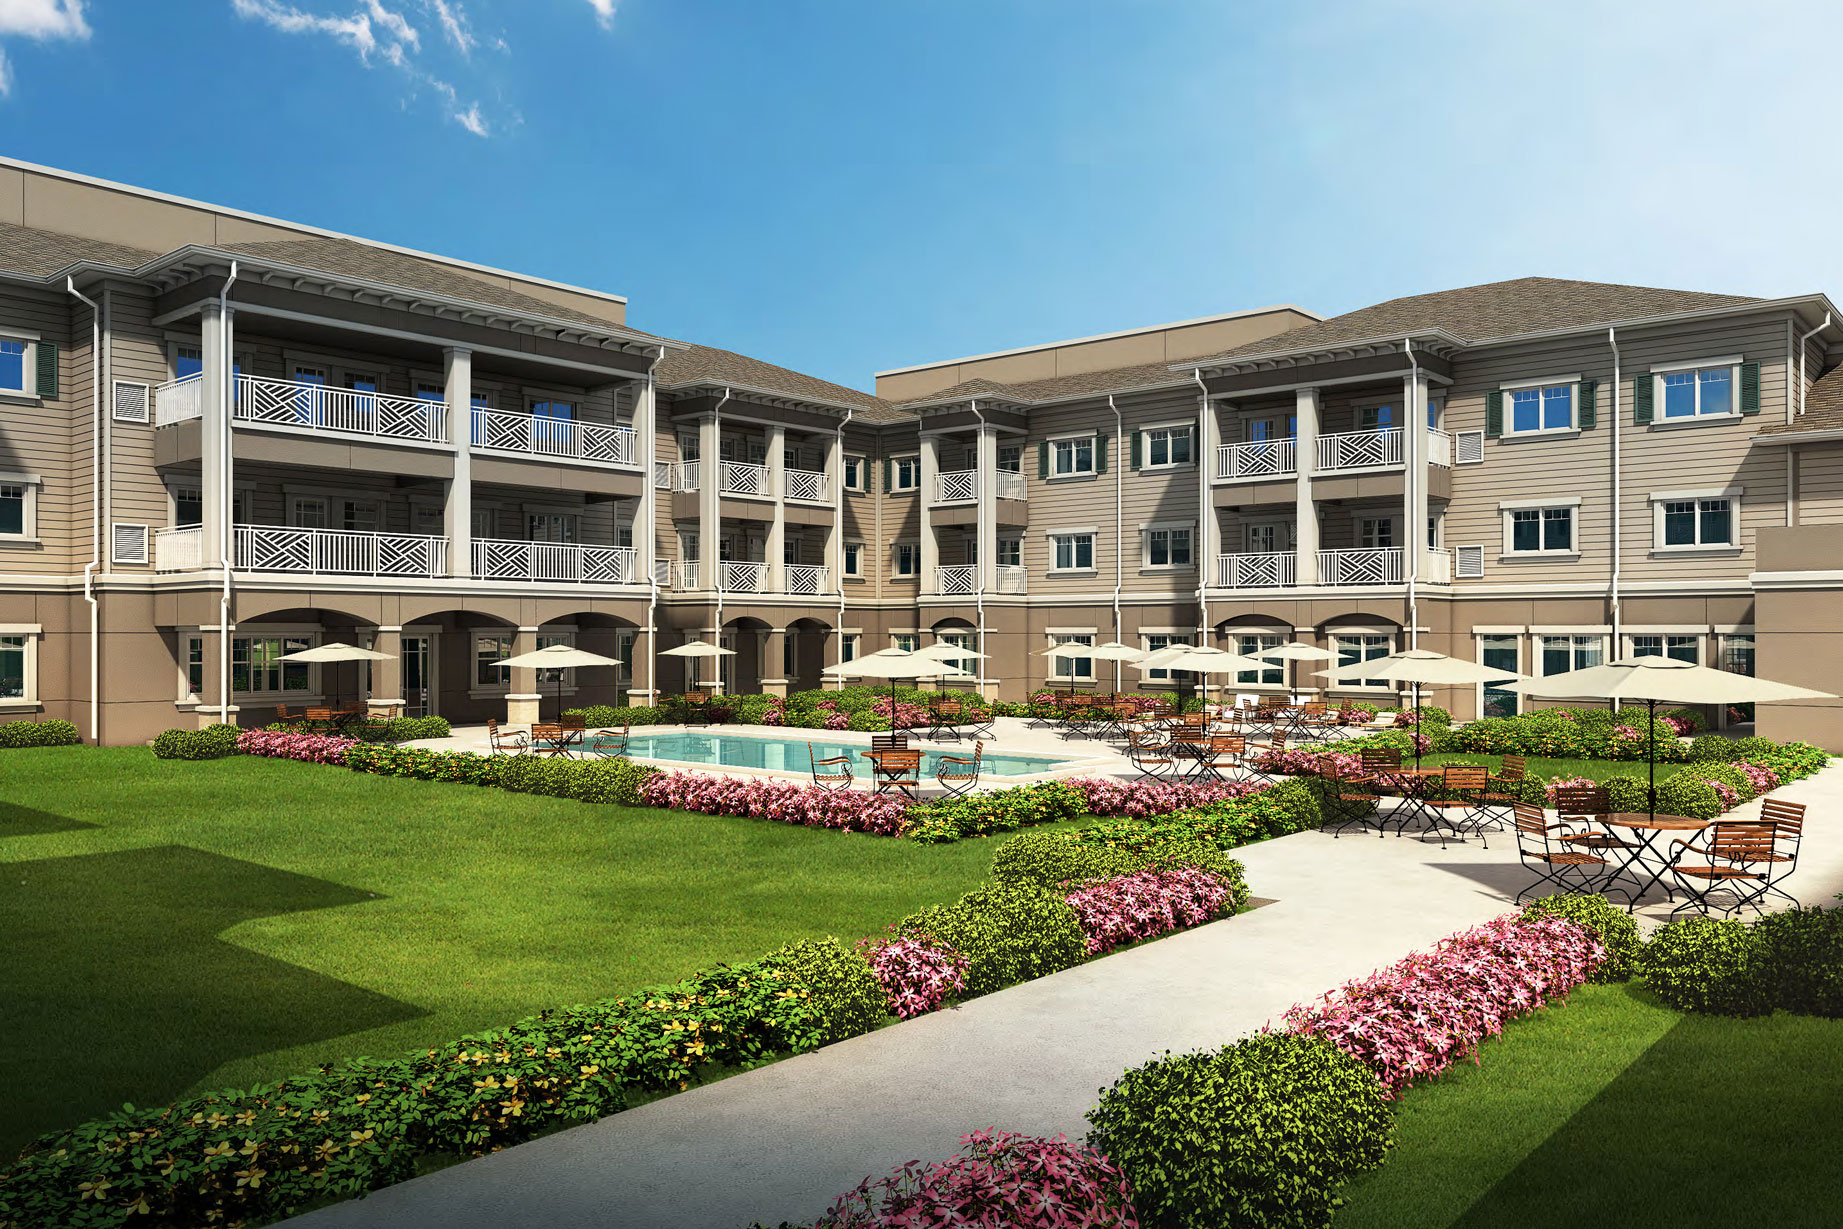 The American House St Petersburg consists of 33 Memory Care, 66 Assisted Living and 66 Independent Living Units for a total 165 units over 169,755 sf